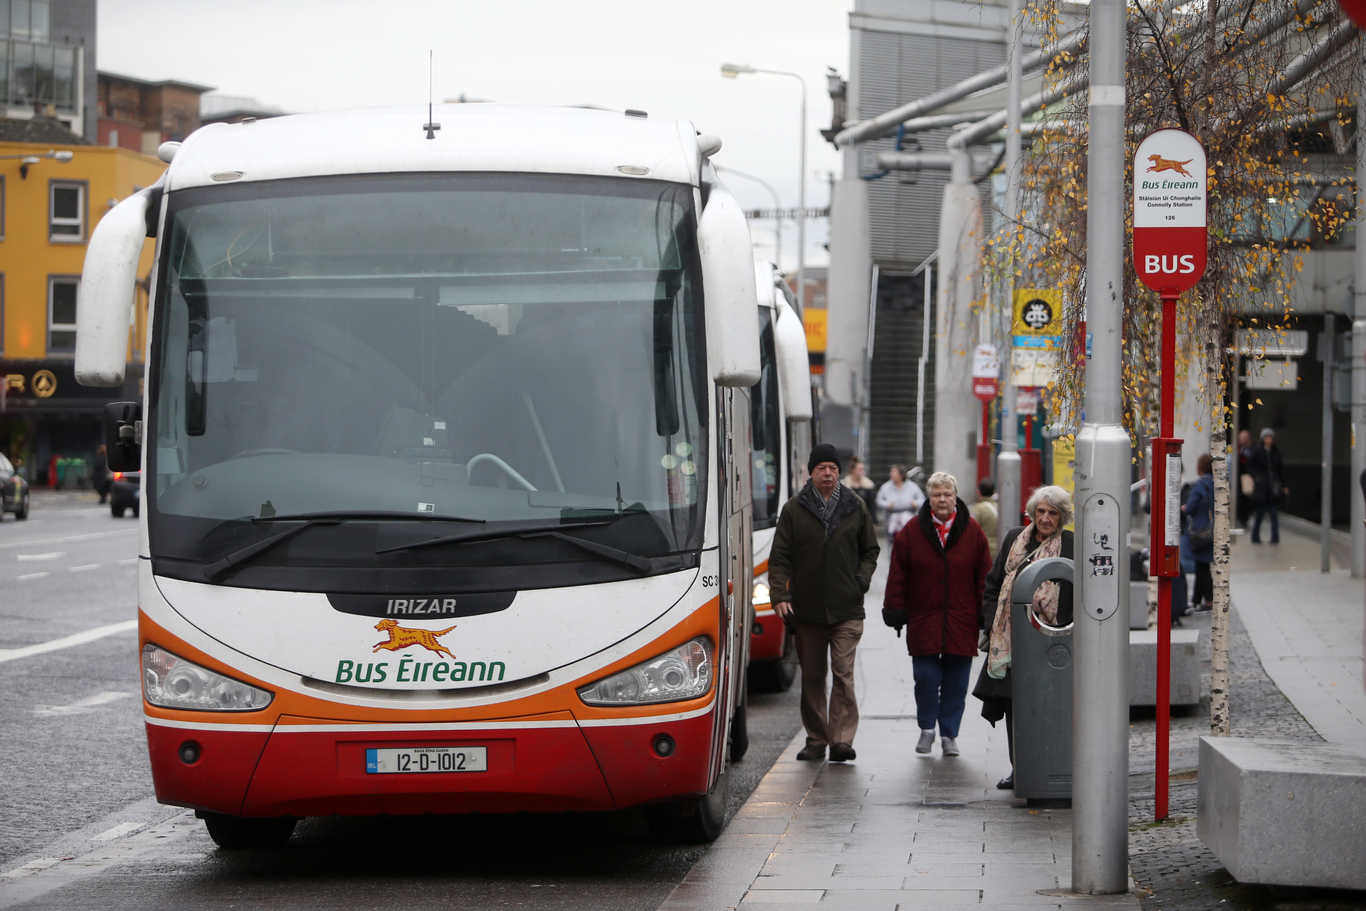 Poll: Should the government let Bus Éireann fail? - Fora